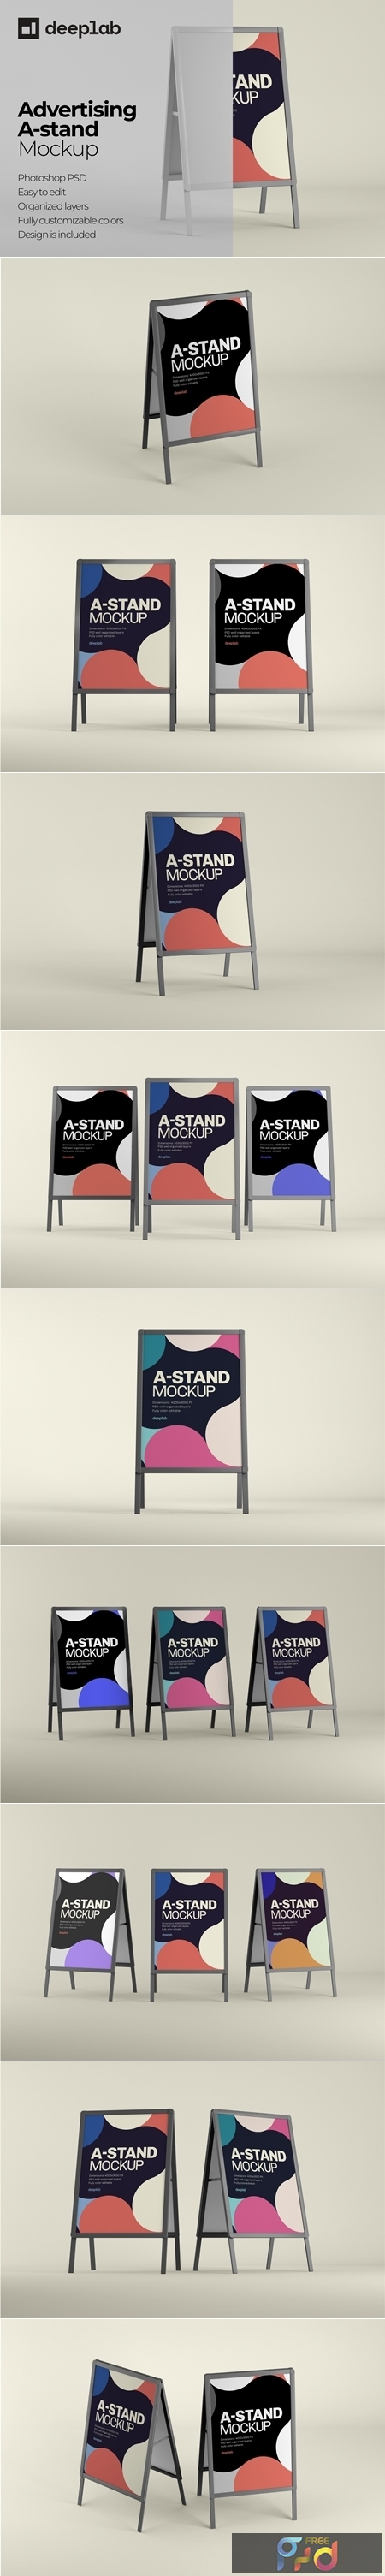 Advertising A-Stand Mockup Set 4430491 1